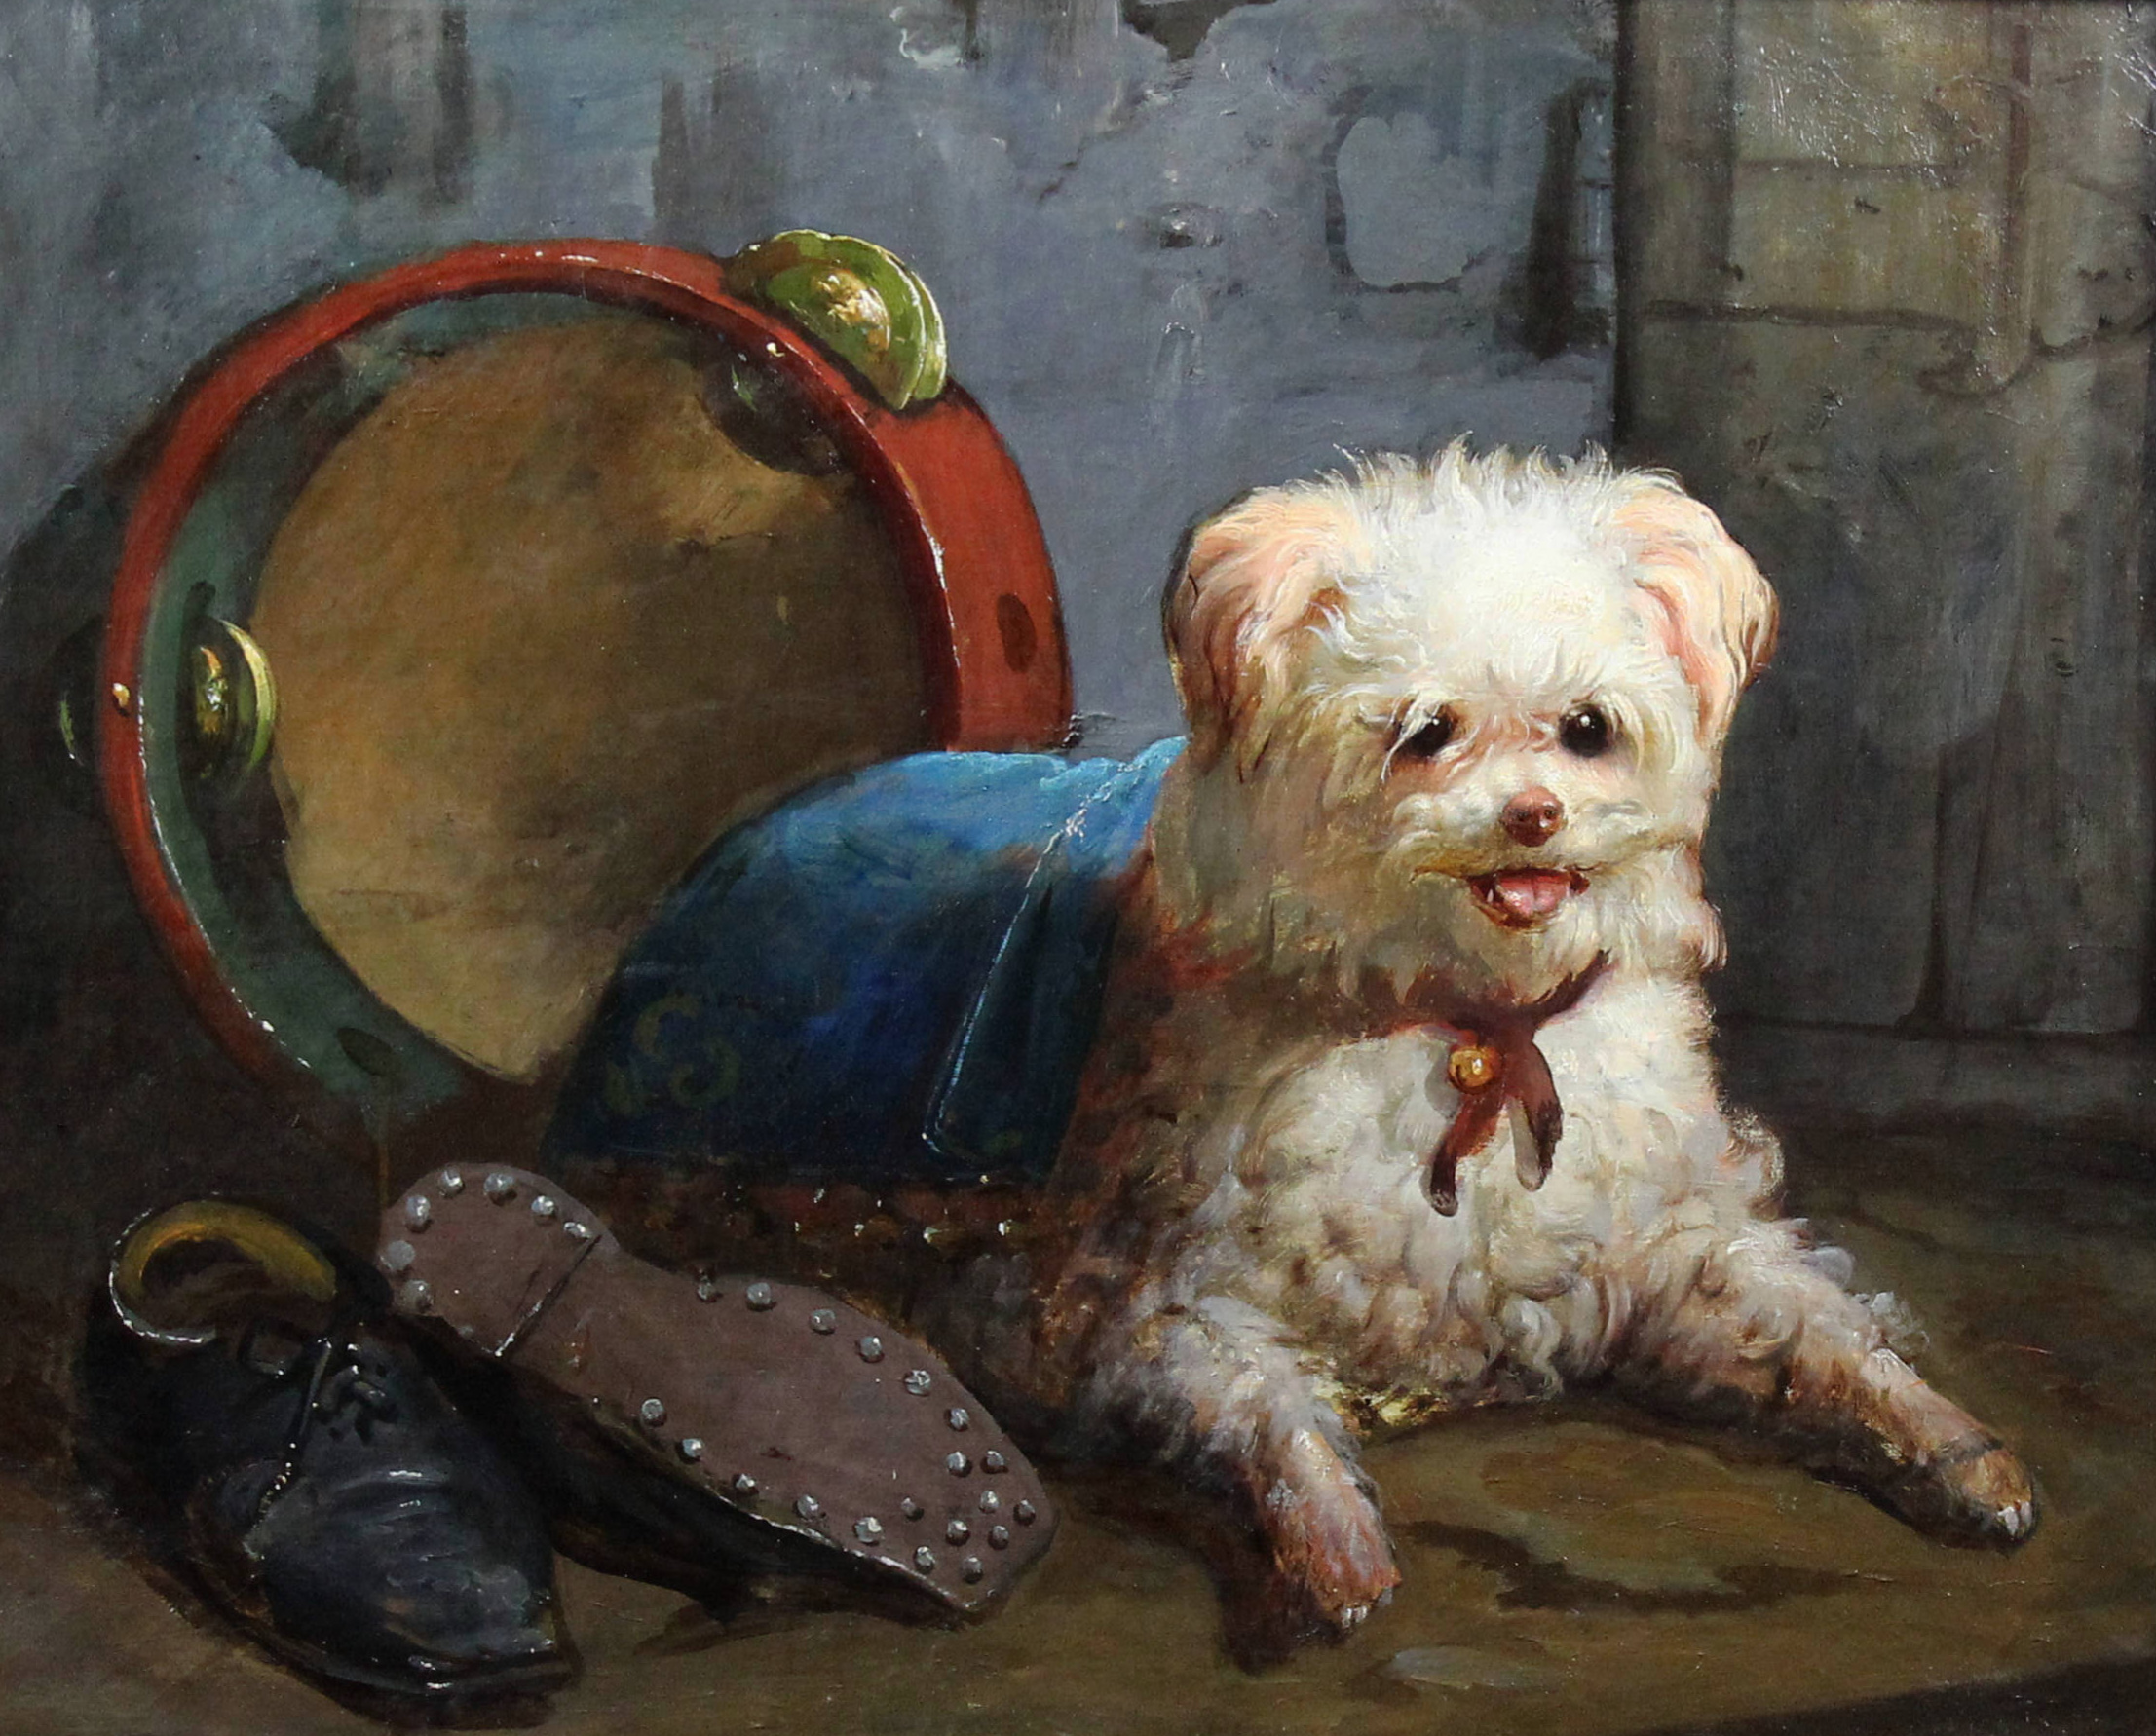 White street dog, French school 19th century